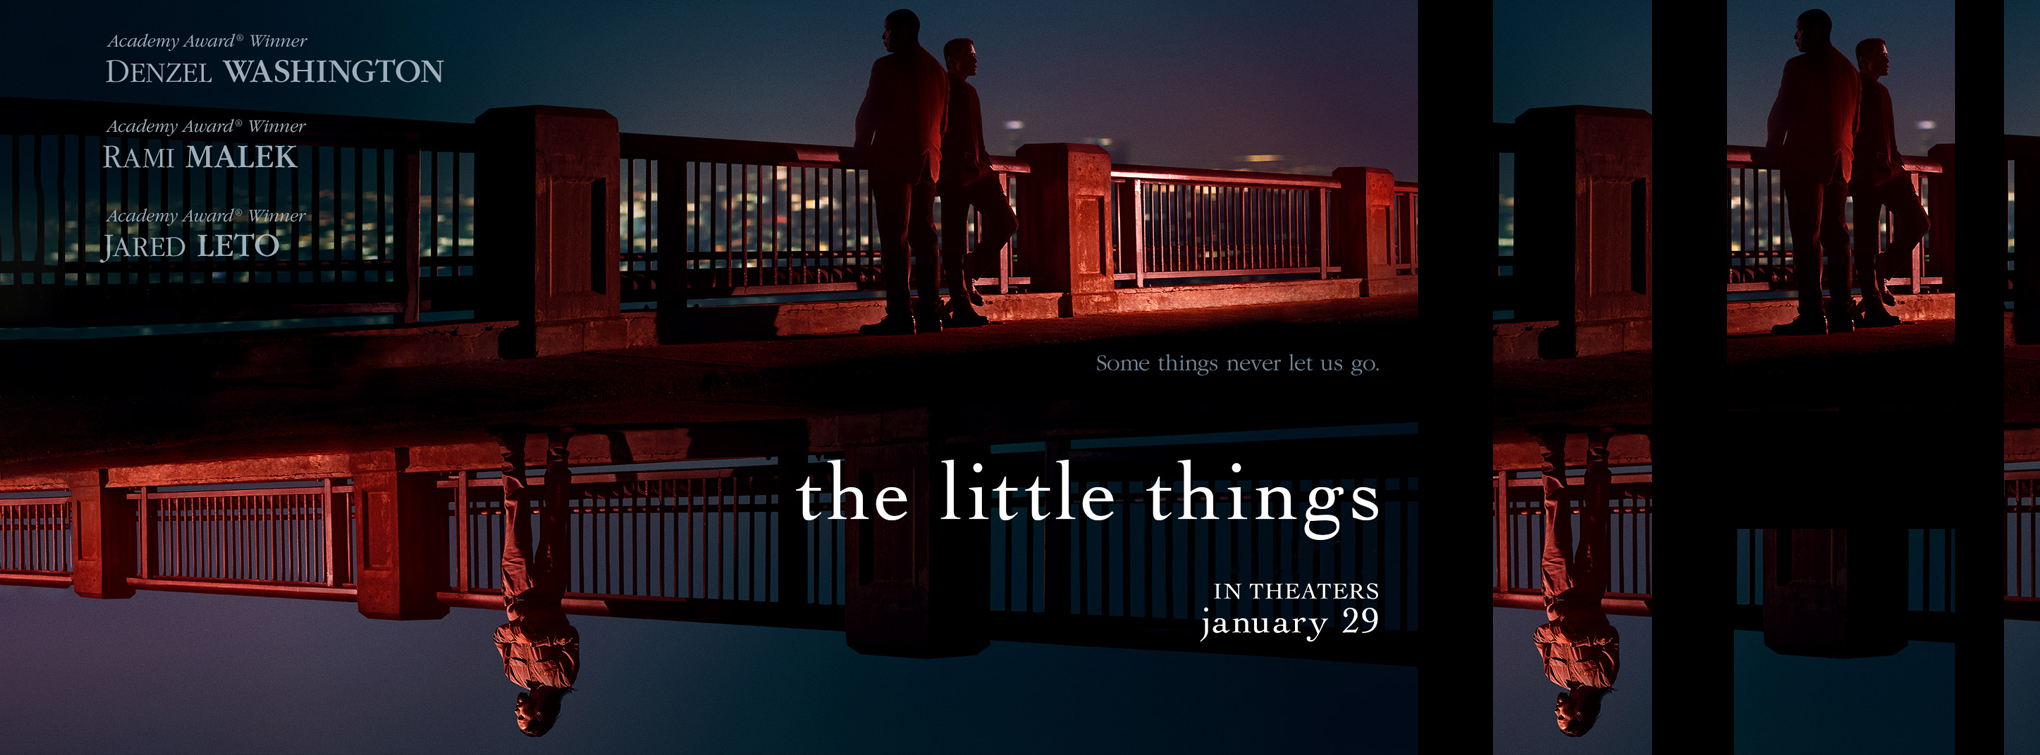 Slider image for The Little Things